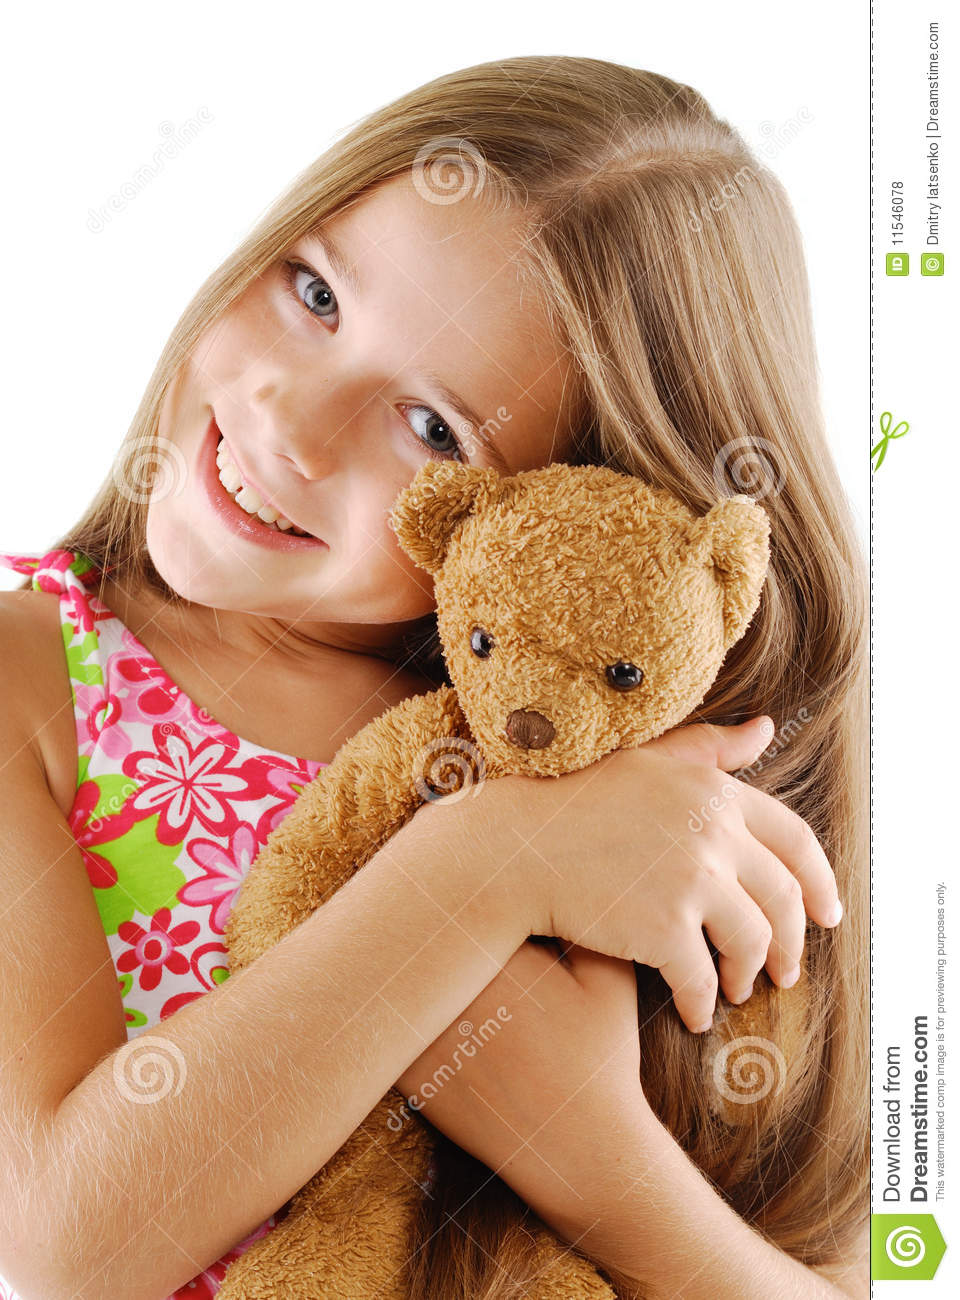 Little Girl With Teddy Bear On White Stock Photo - Image ...Little Girl With Teddy Bear Black And White